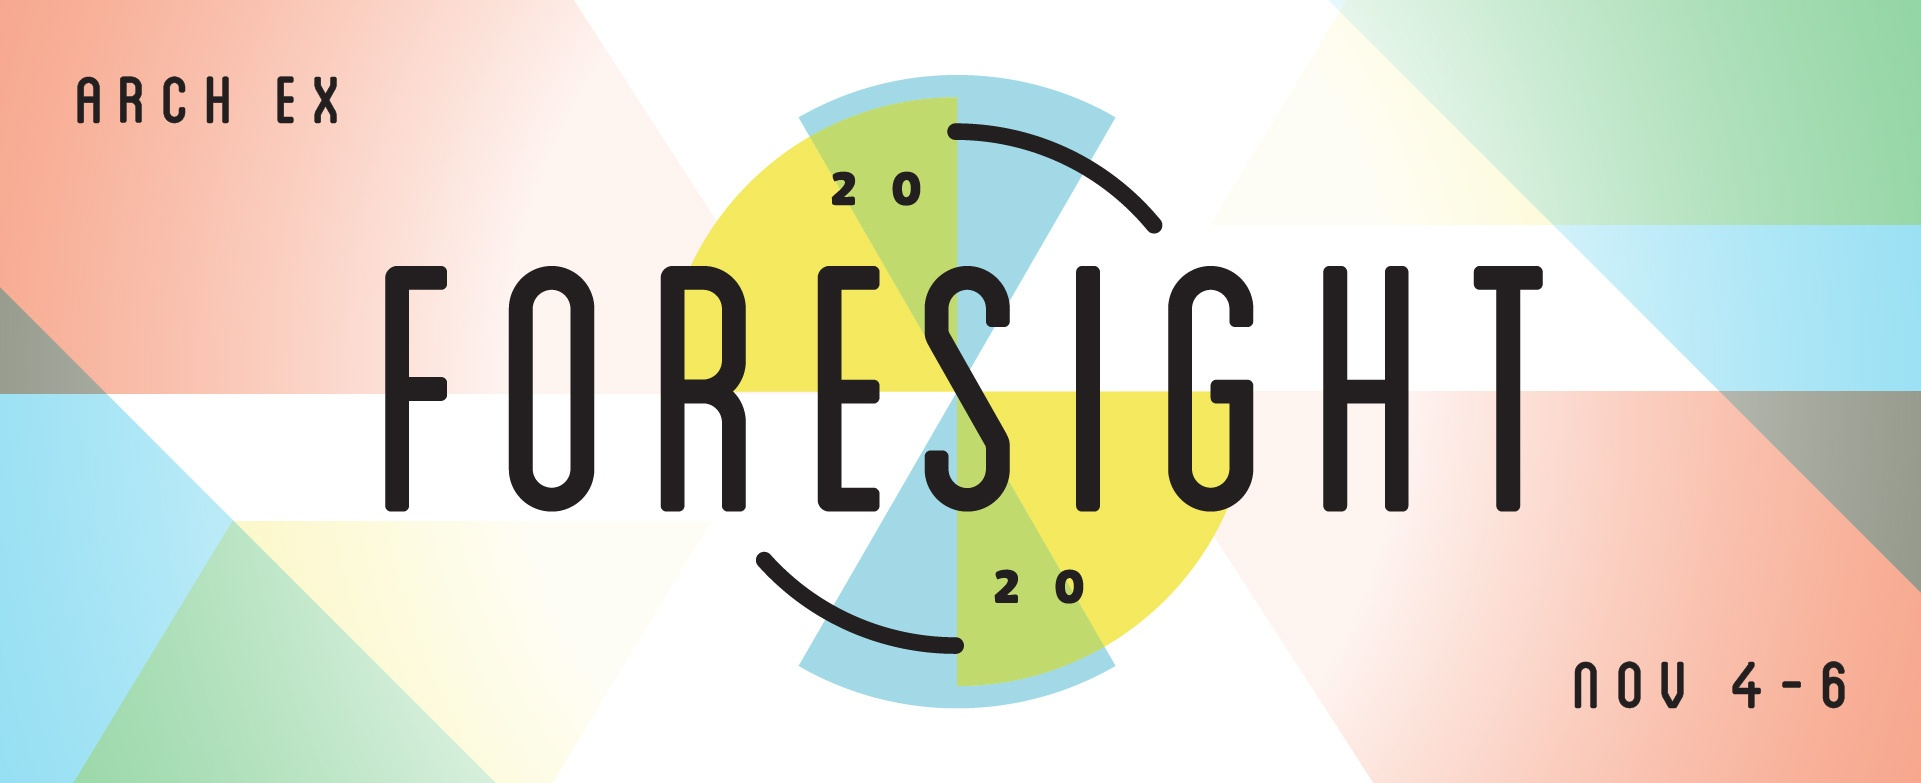 Architecture Exchange East: Foresight 2020